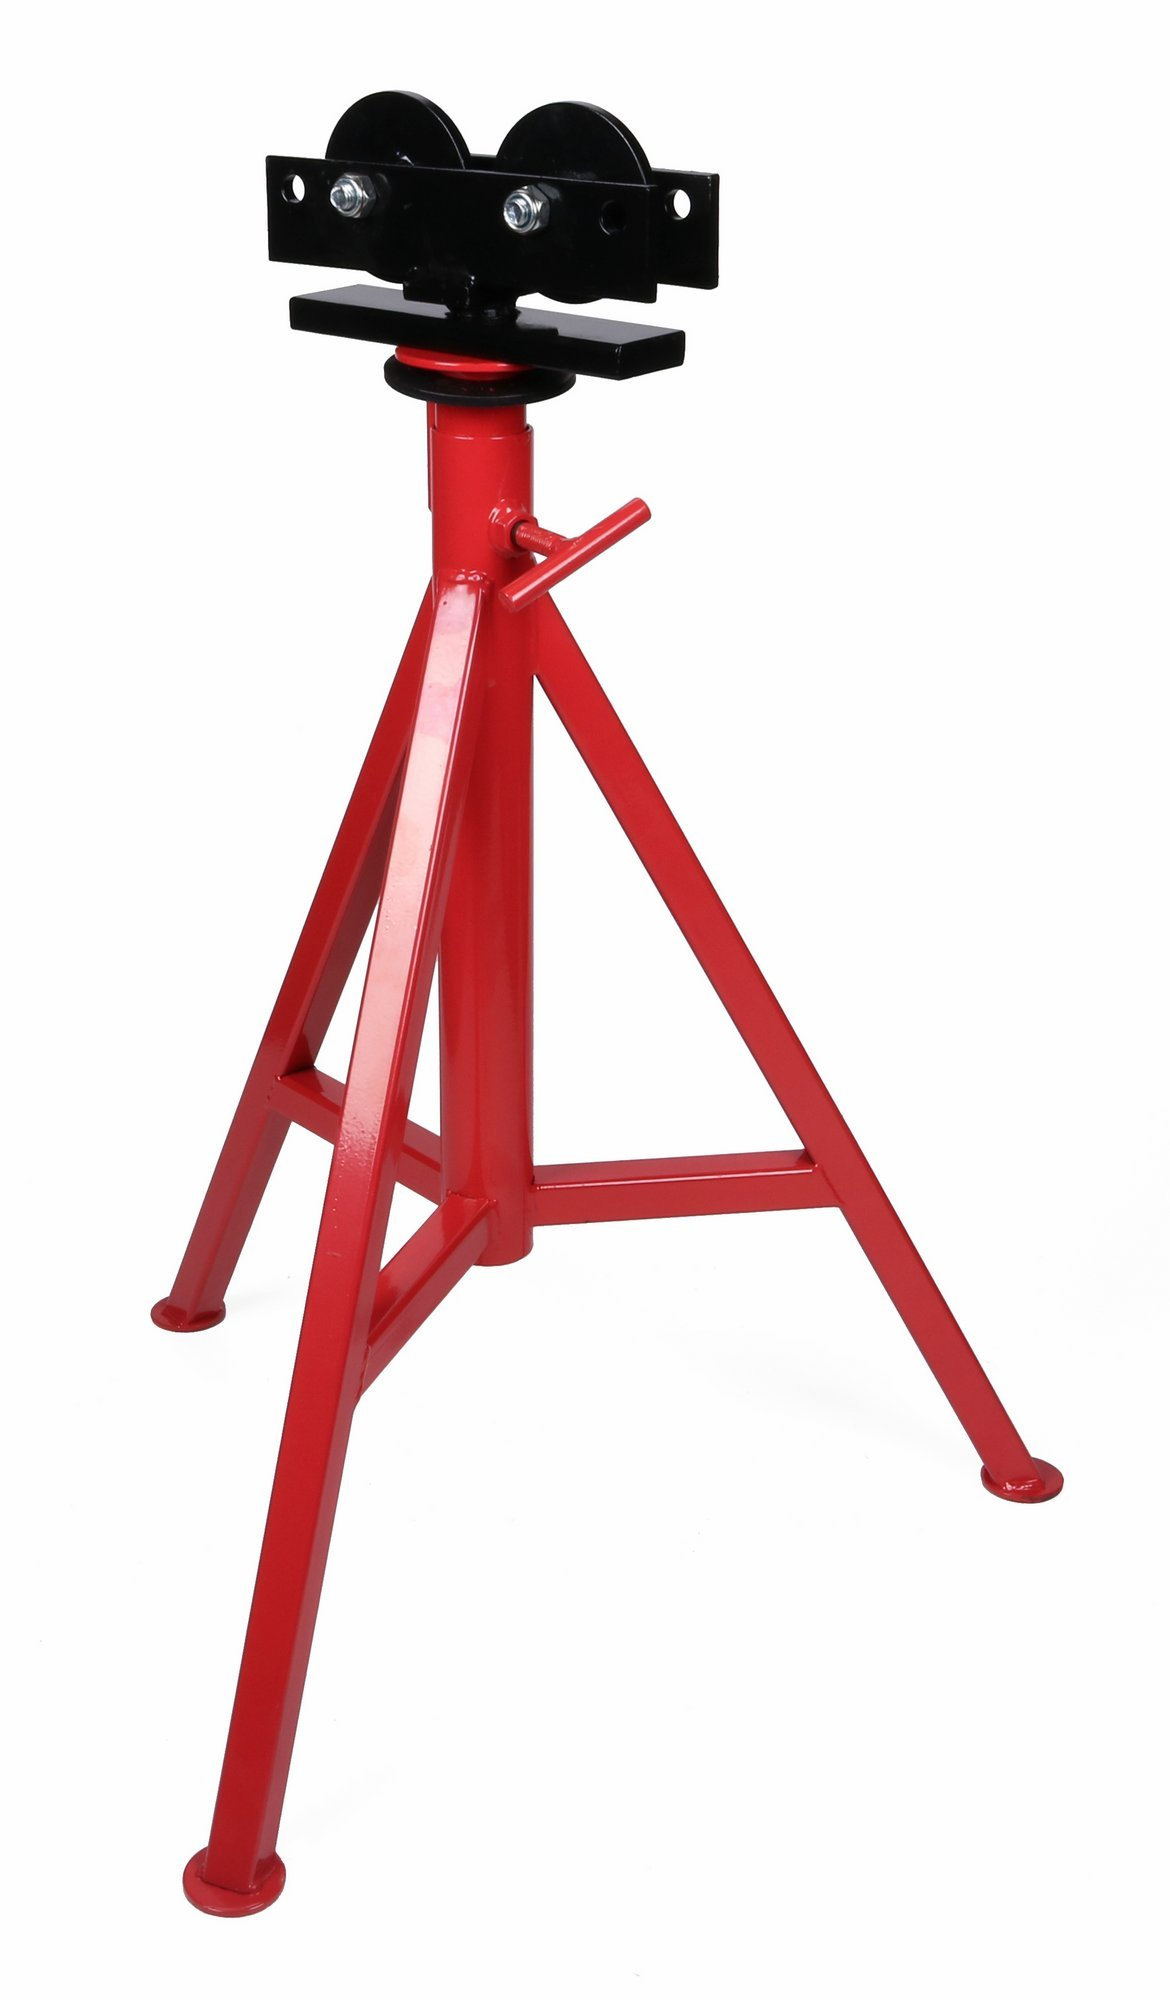 Toledo Pipe 56672 1/8''-12'' Roller High Head Pipe Stand Adjustable 29''-49'' fits RIDGID Model RJ-99 With Adjustable Roller